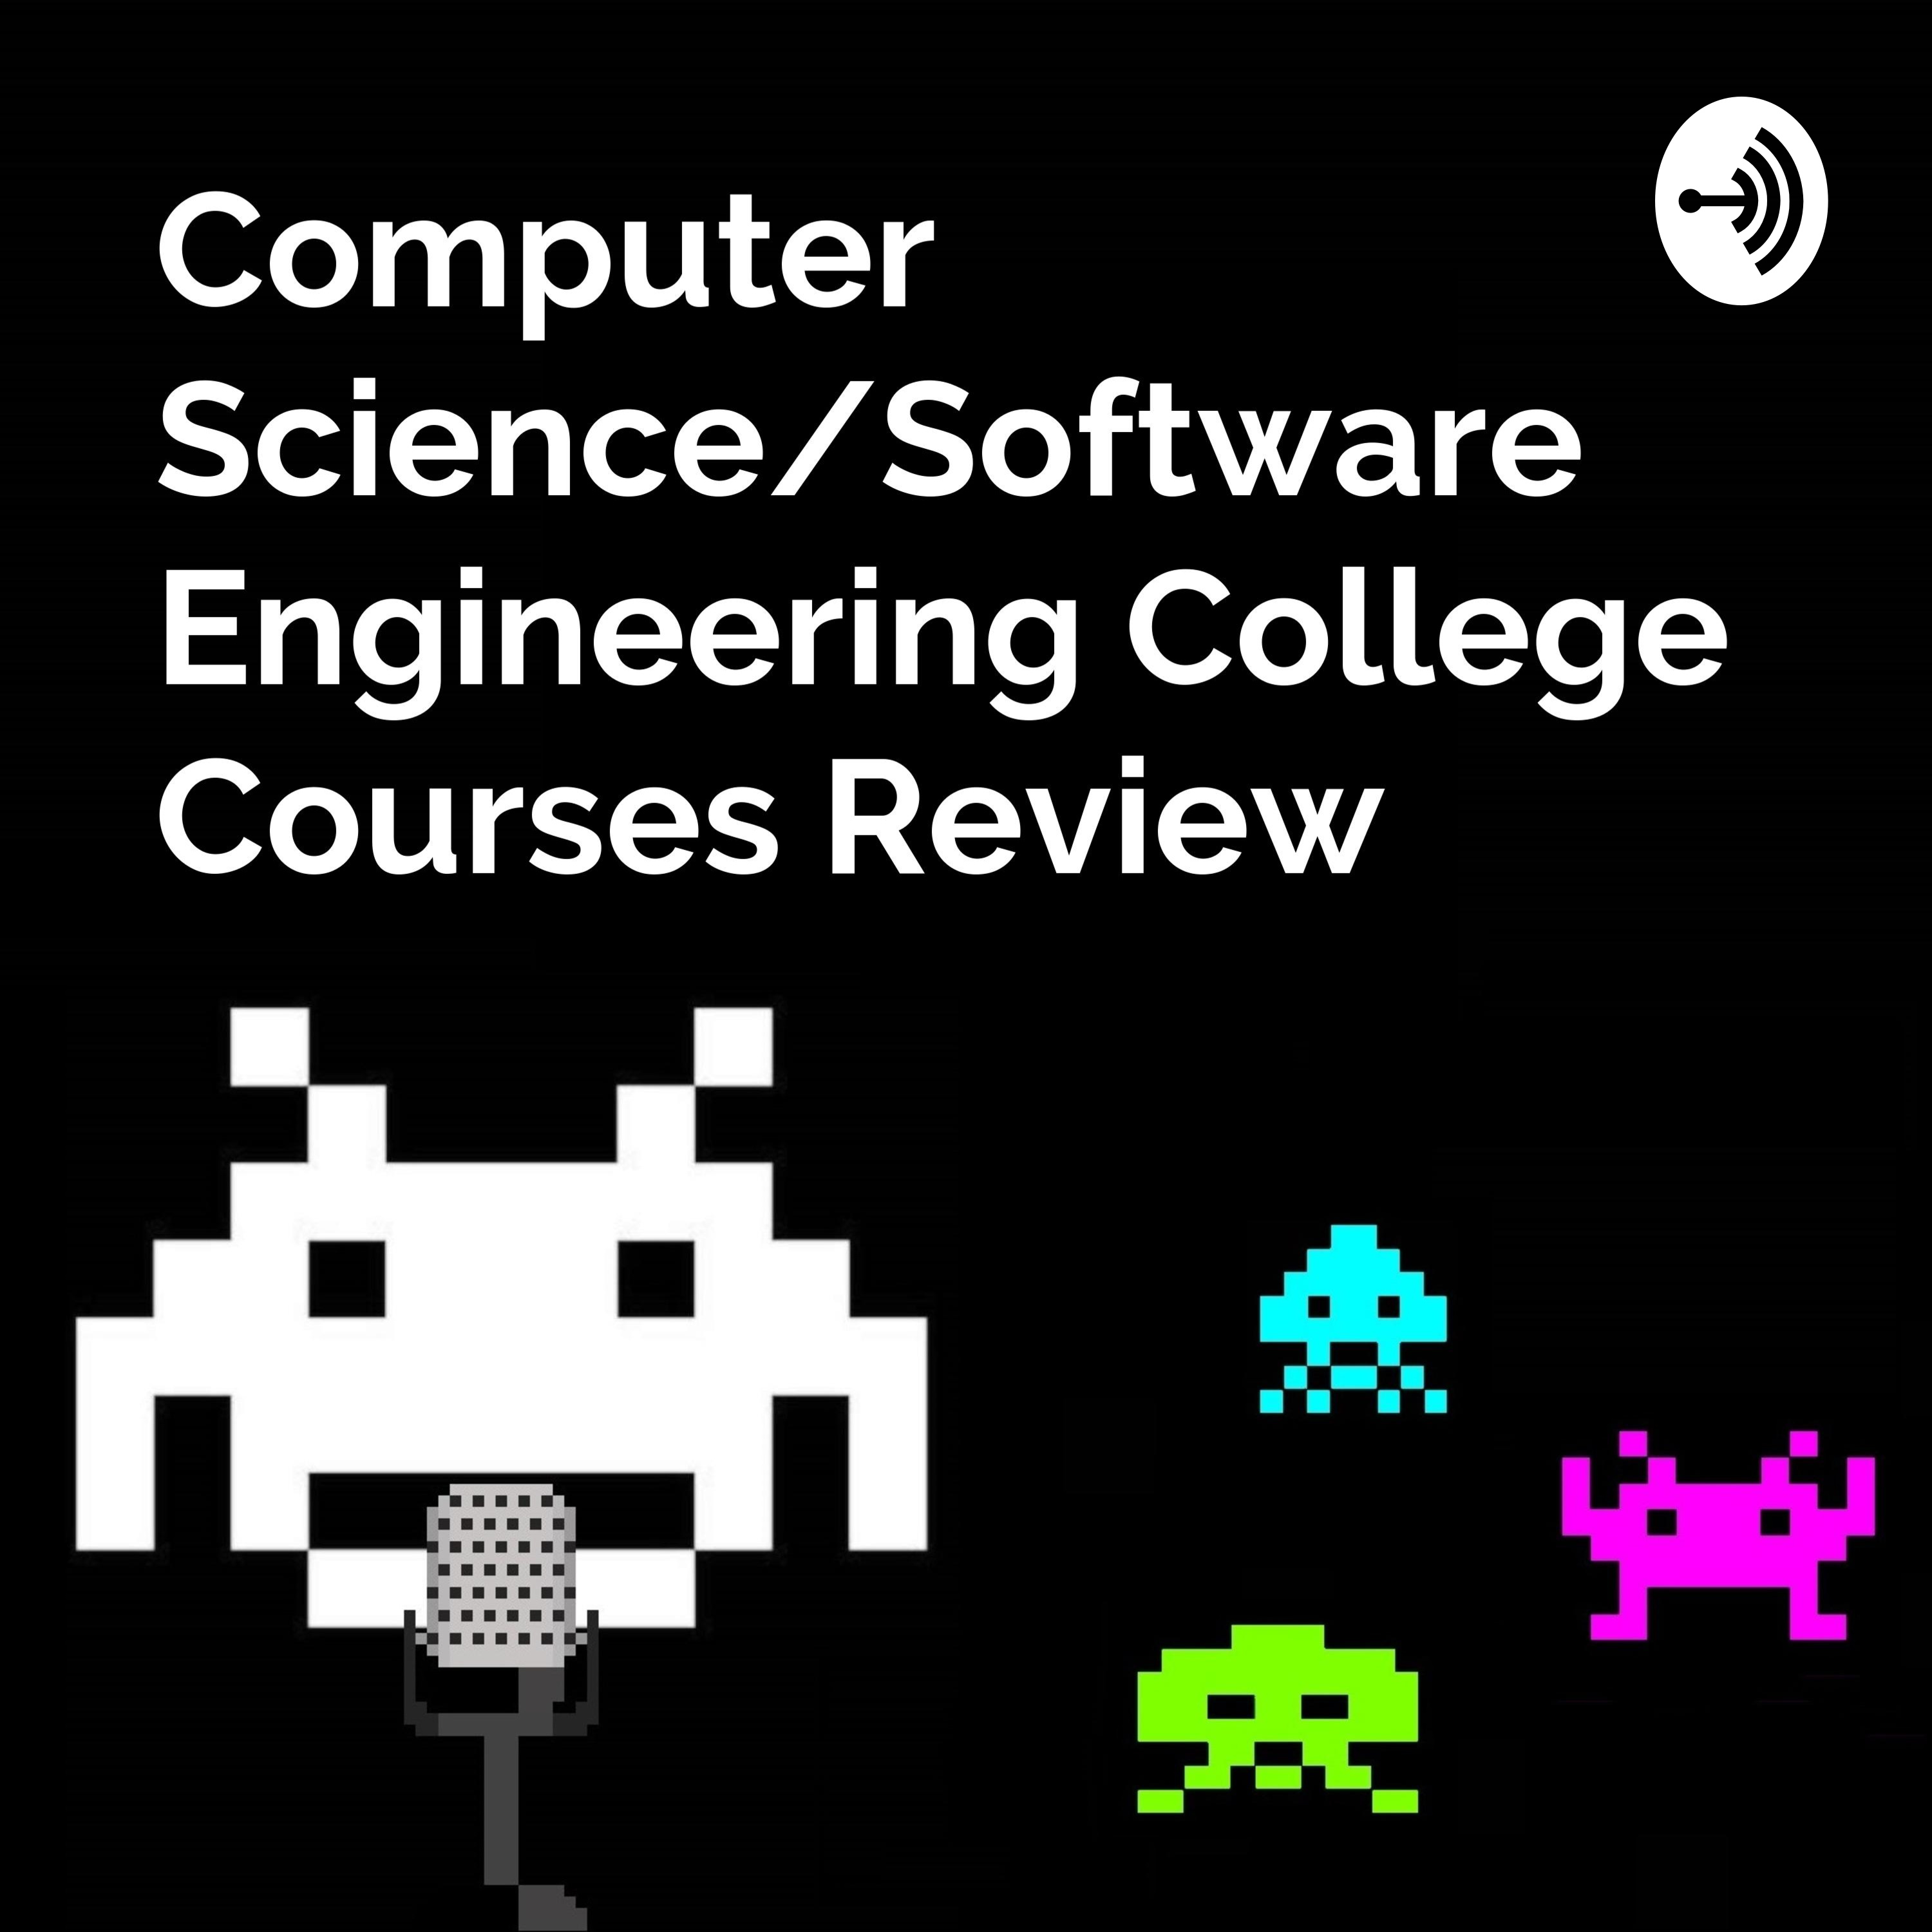 Computer Science/Software Engineering College Courses Review